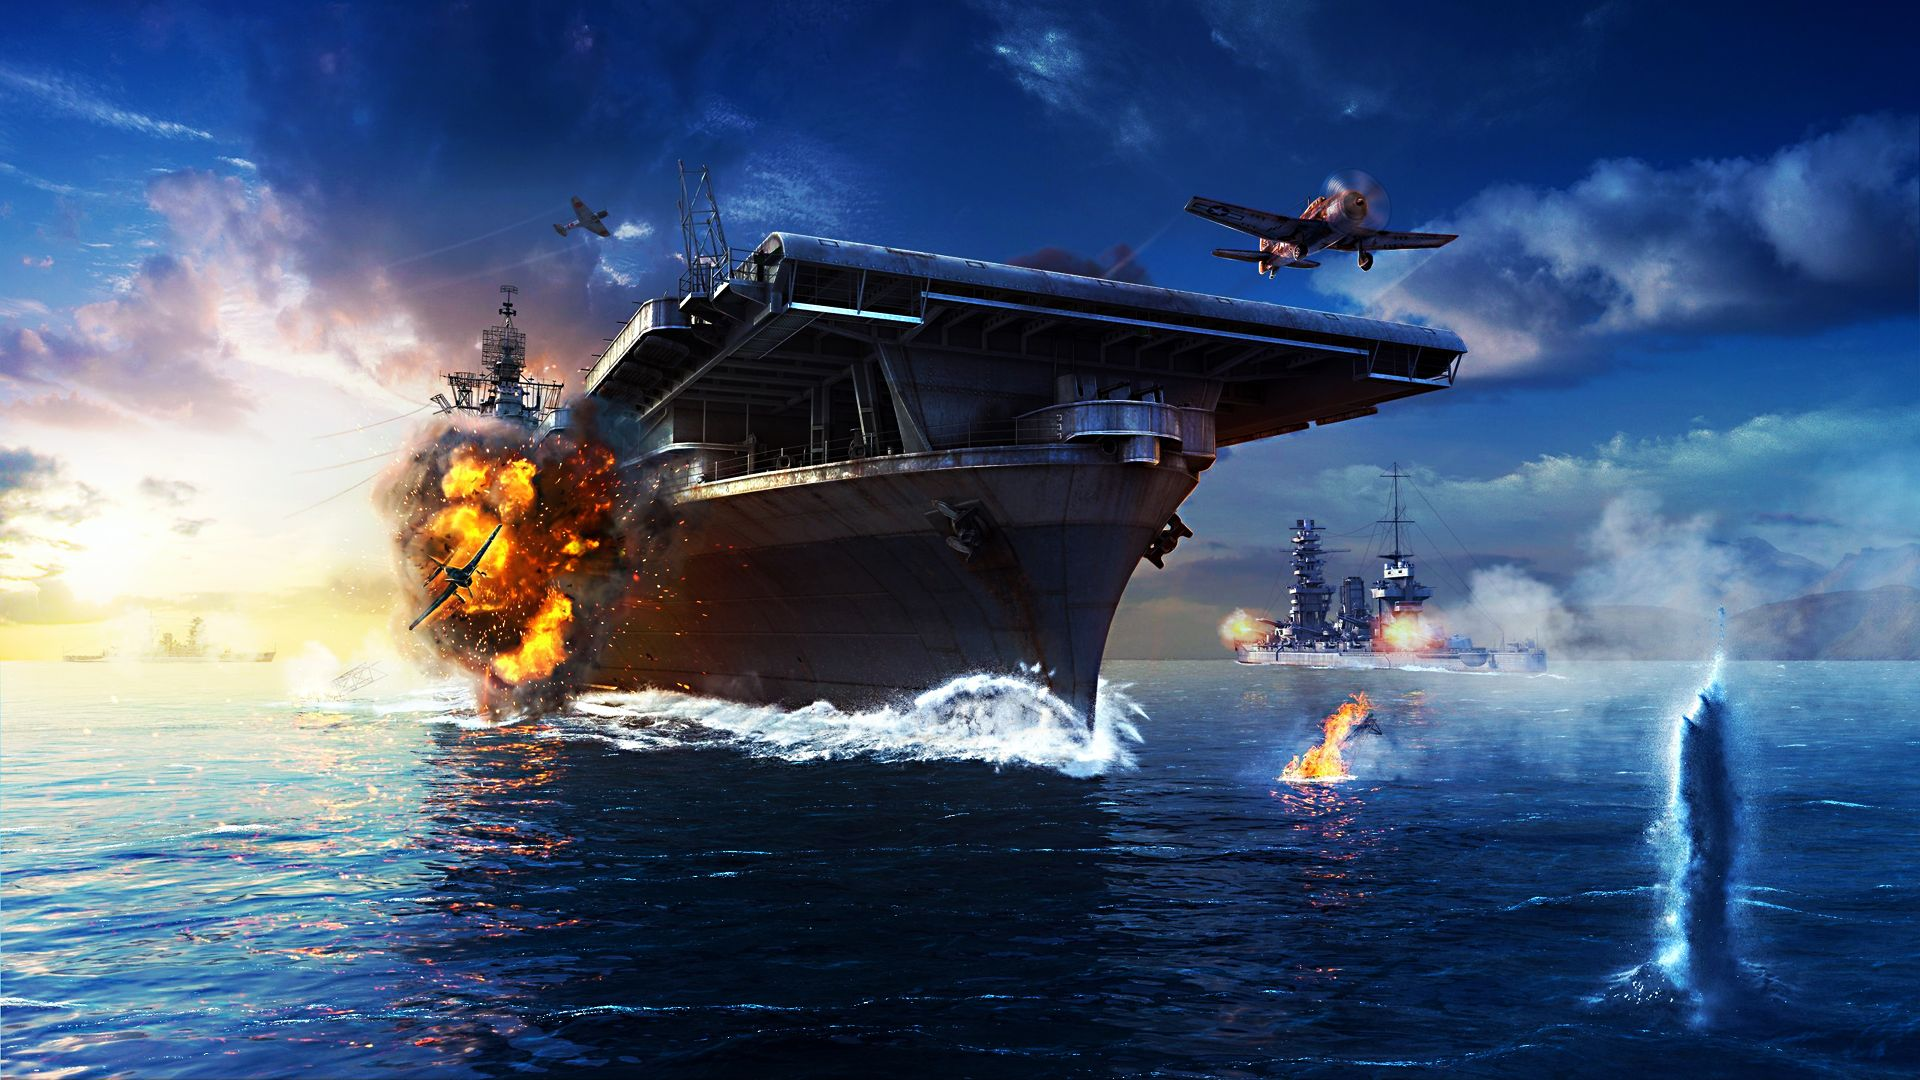 World of Warships, game, MMORPG, simulator, sea, water, battle, fire, ship, storm, Best Games of 2016